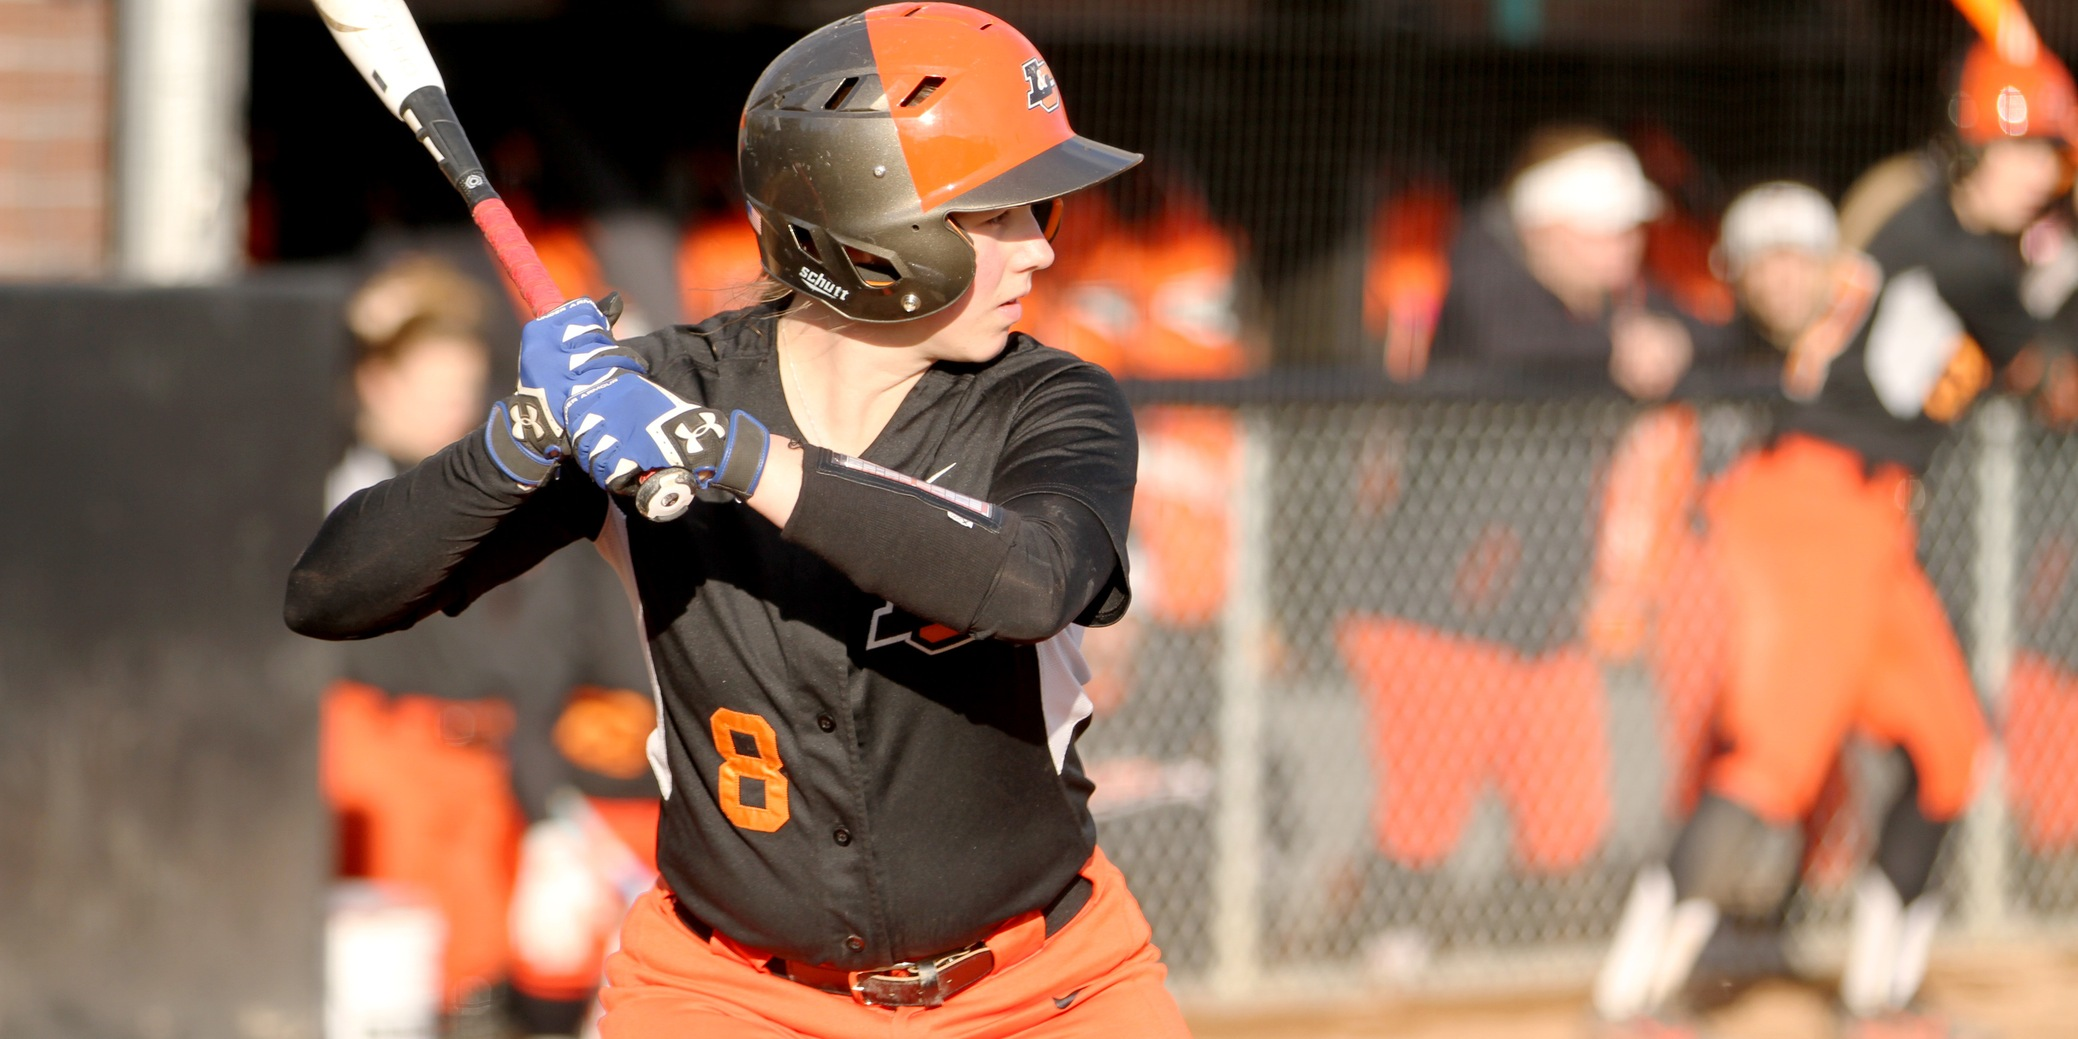 Lewis & Clark roars back in second game to split day one at Willamette